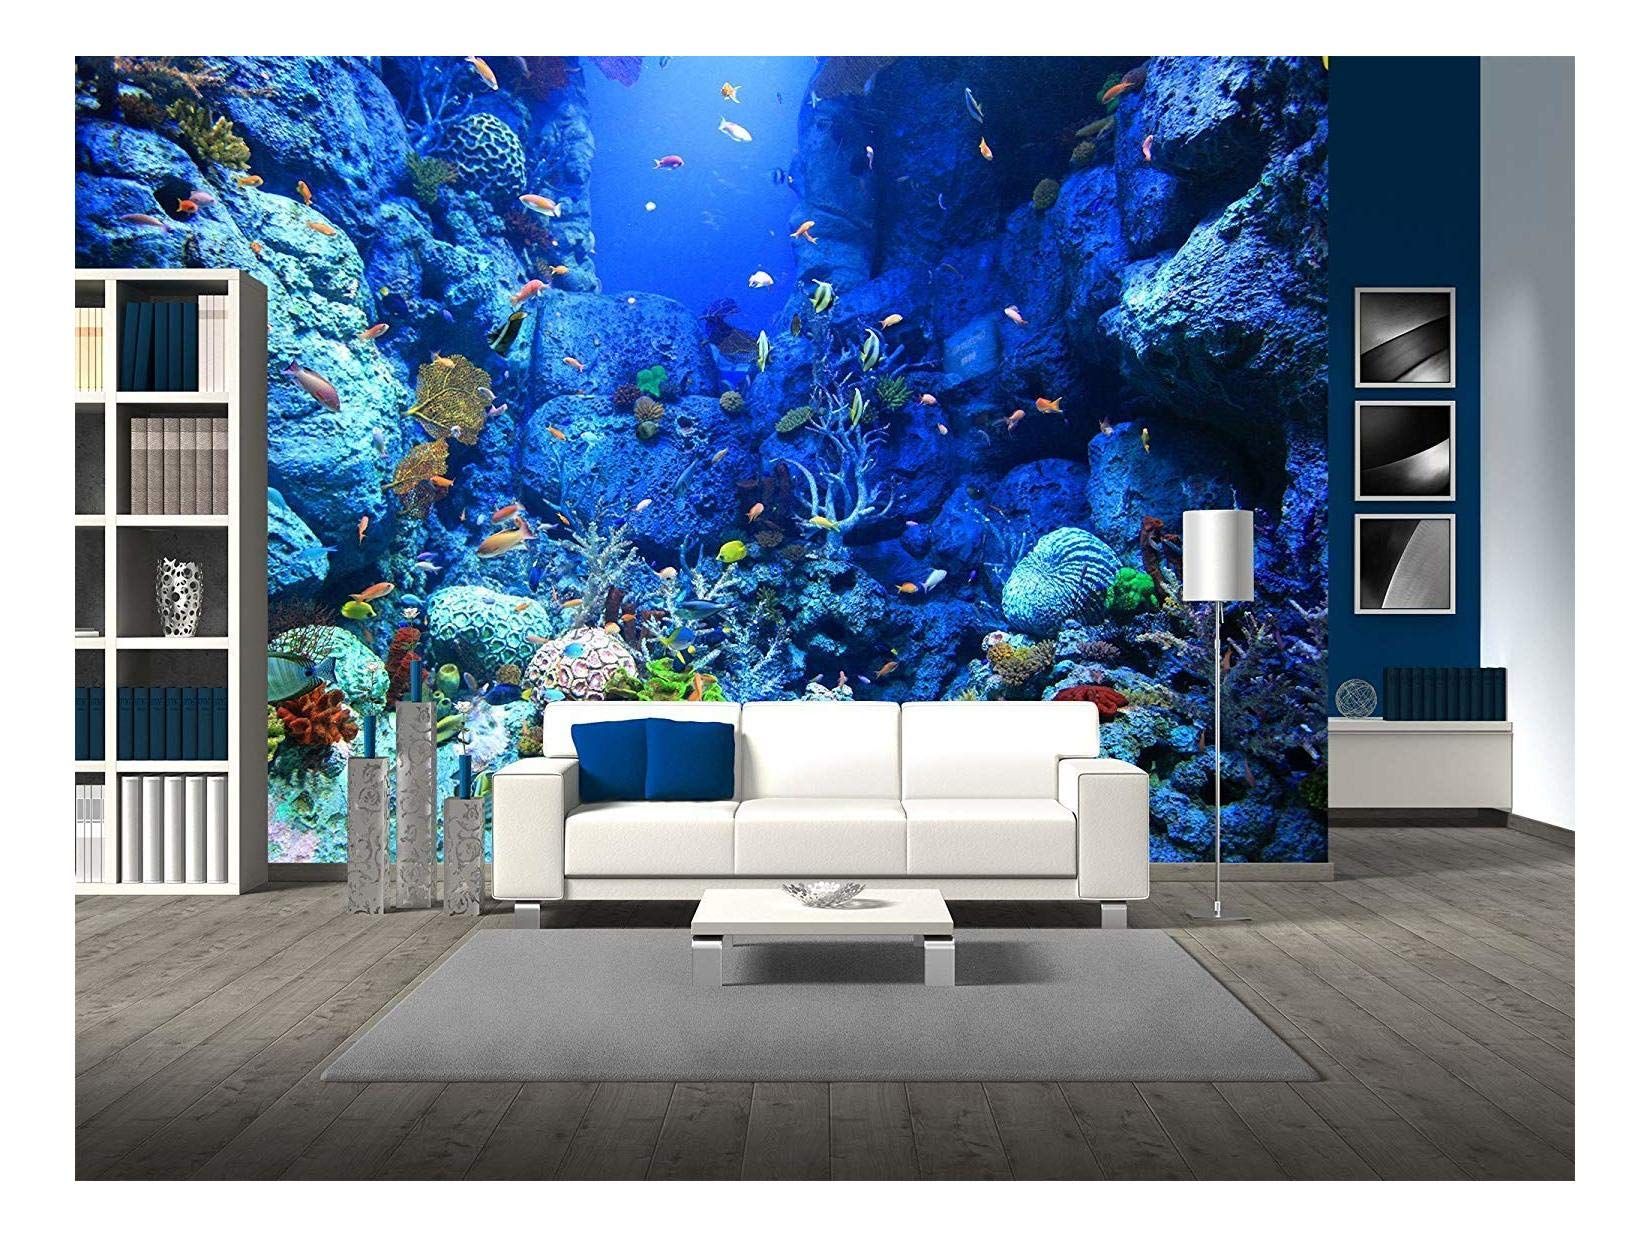 wall26 Self-Adhesive Wallpaper Large Wall Mural Series (66''x96'', Artwork - 15)